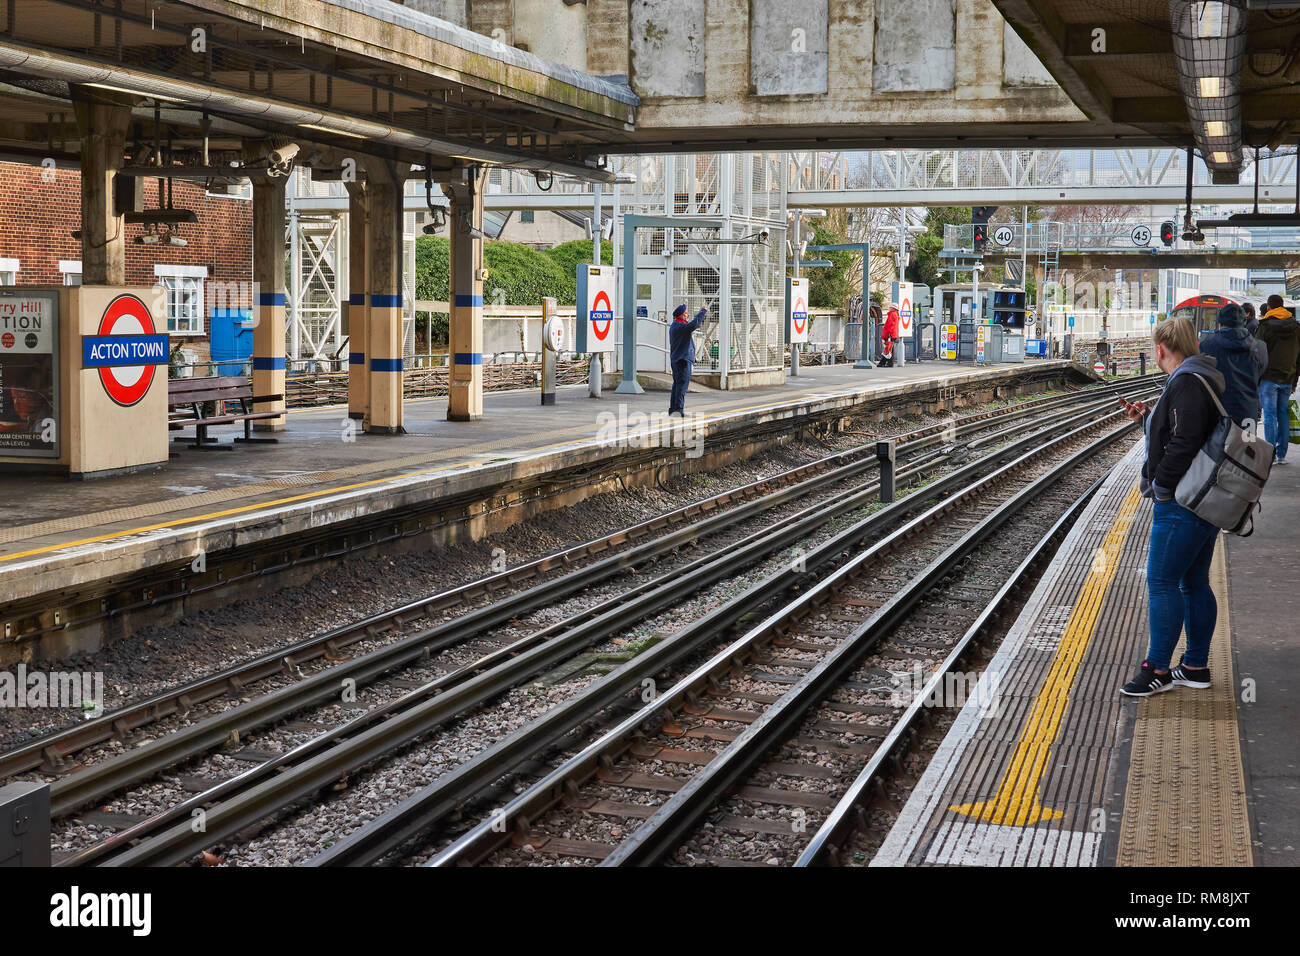 LONDON UNDERGROUND OR TUBE TRAIN ARRIVING AT ACTON TOWN STATION ON PICCADILLY LINE - Stock Image